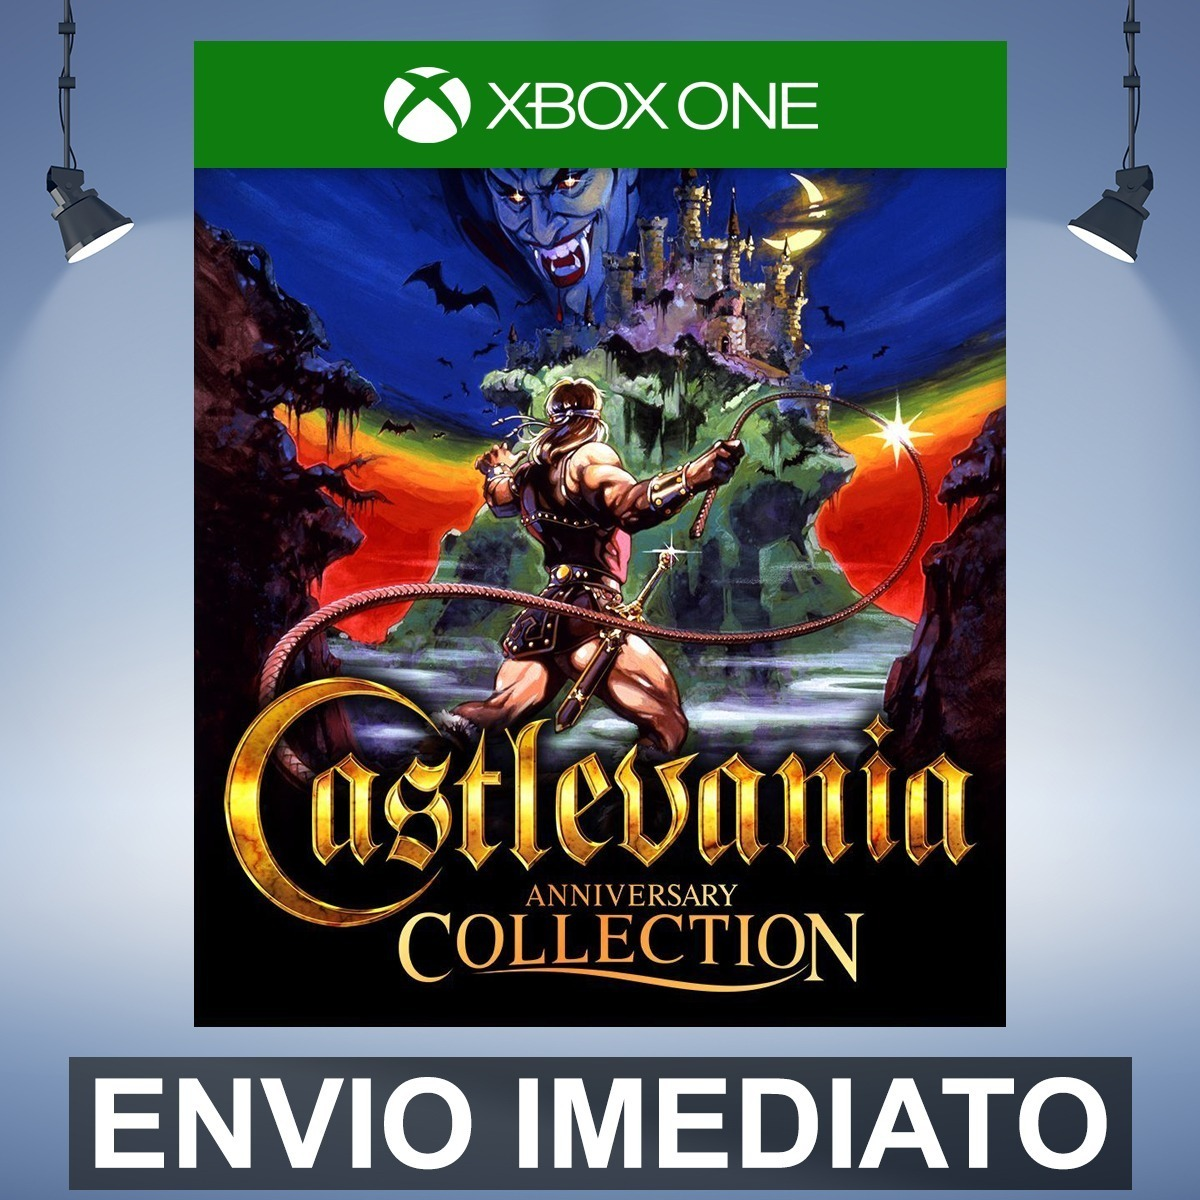 castlevania collection xbox one